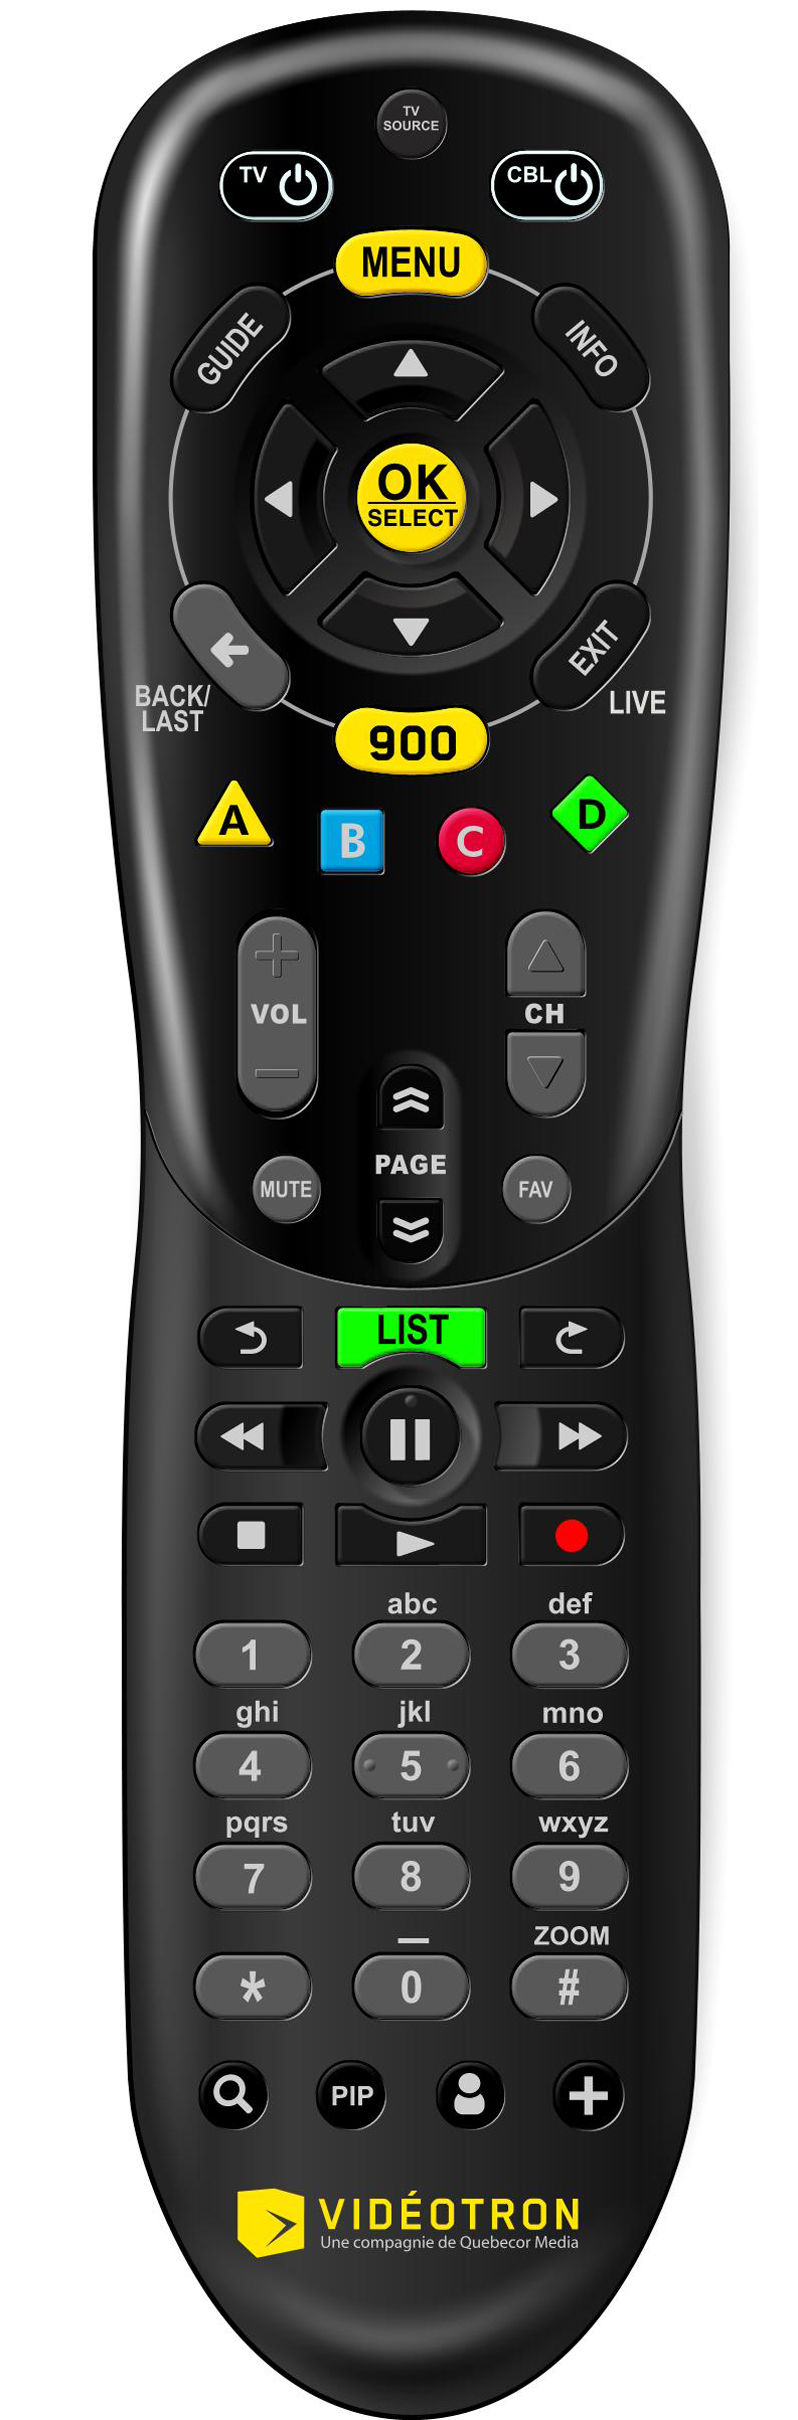 Solved Programing A Remote Thats Not Listed Xfinity Help And Support Forums 2856875